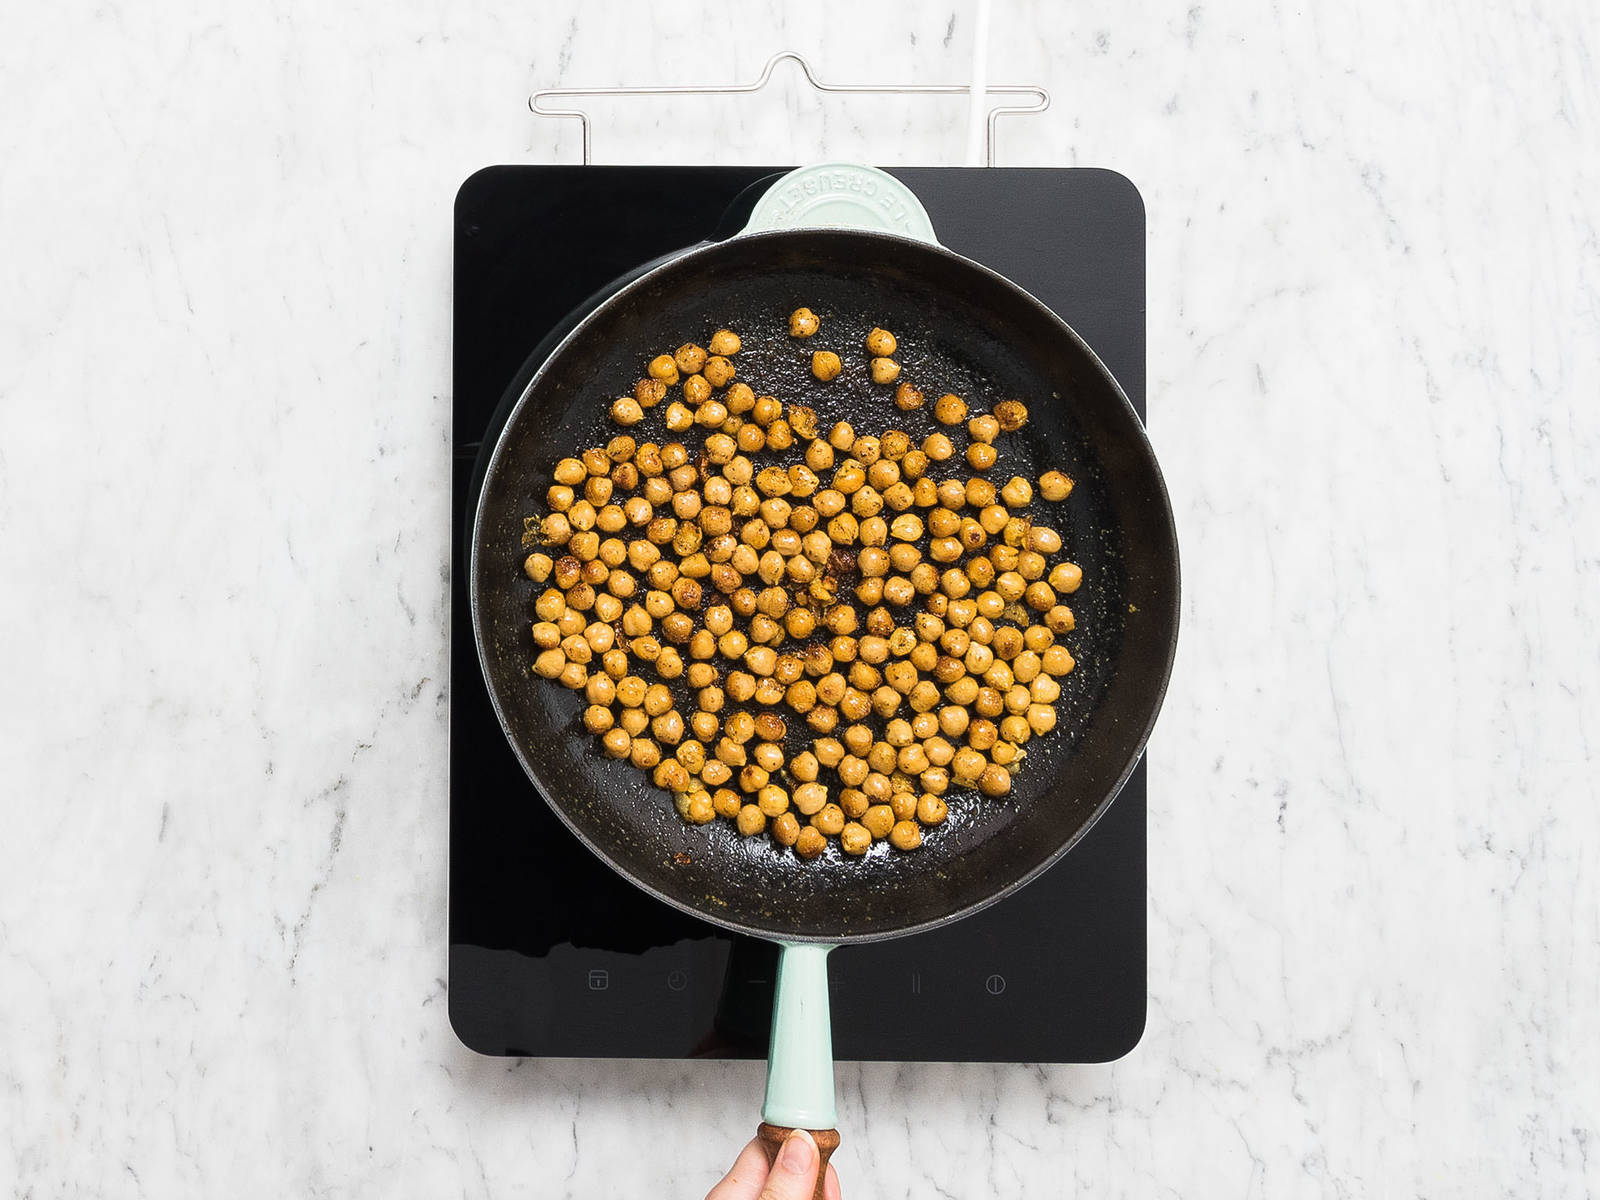 Rinse chickpeas until water runs clear, then pat dry. In a large bowl, mix chickpeas, curry powder, olive oil, and garlic powder together and season with salt and pepper. Heat a frying pan over medium-high heat and fry chickpeas for approx. 5 min., or until golden brown. Remove from pan and set aside.